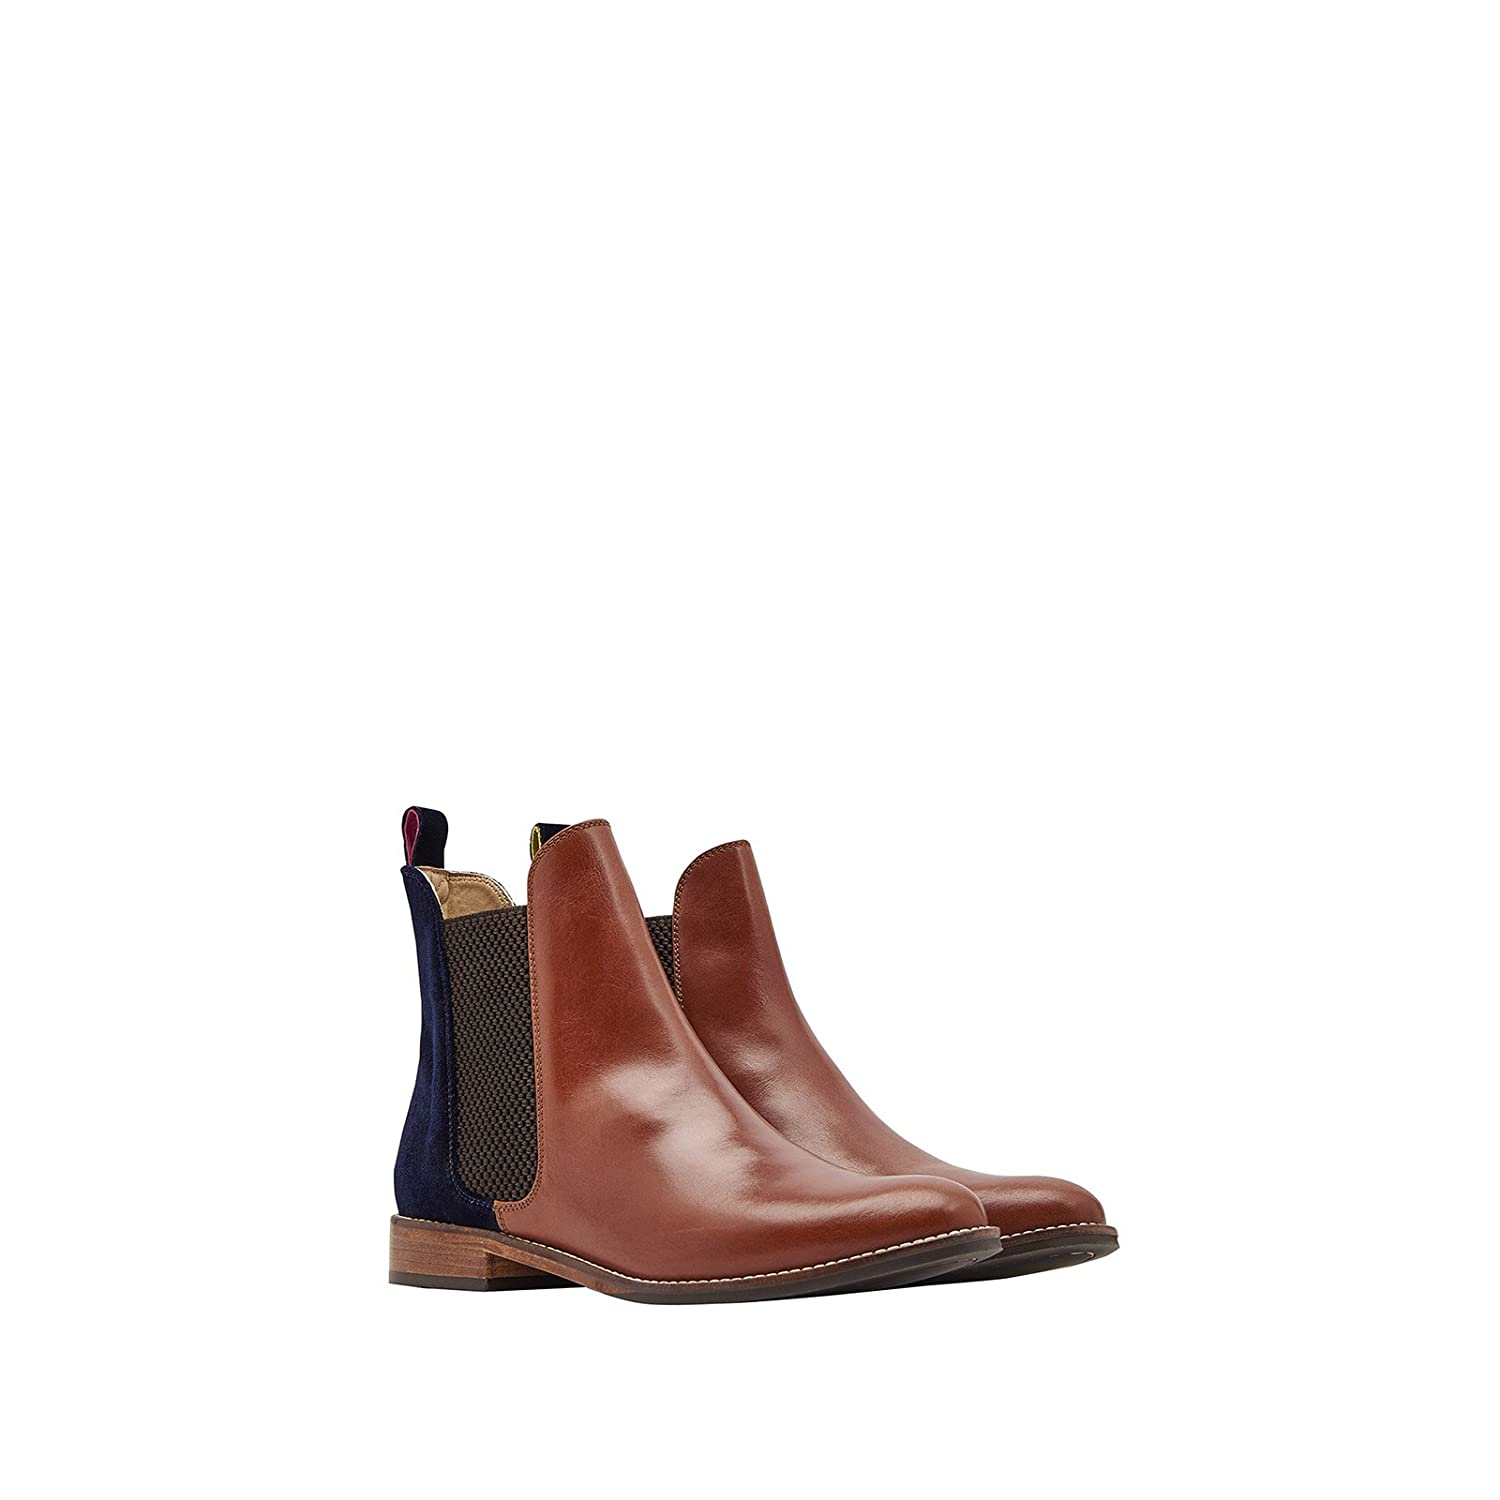 Joules Women's Westbourne Leather Chelsea Boots B073XKDRQF 7 B(M) US|Tan/Navy